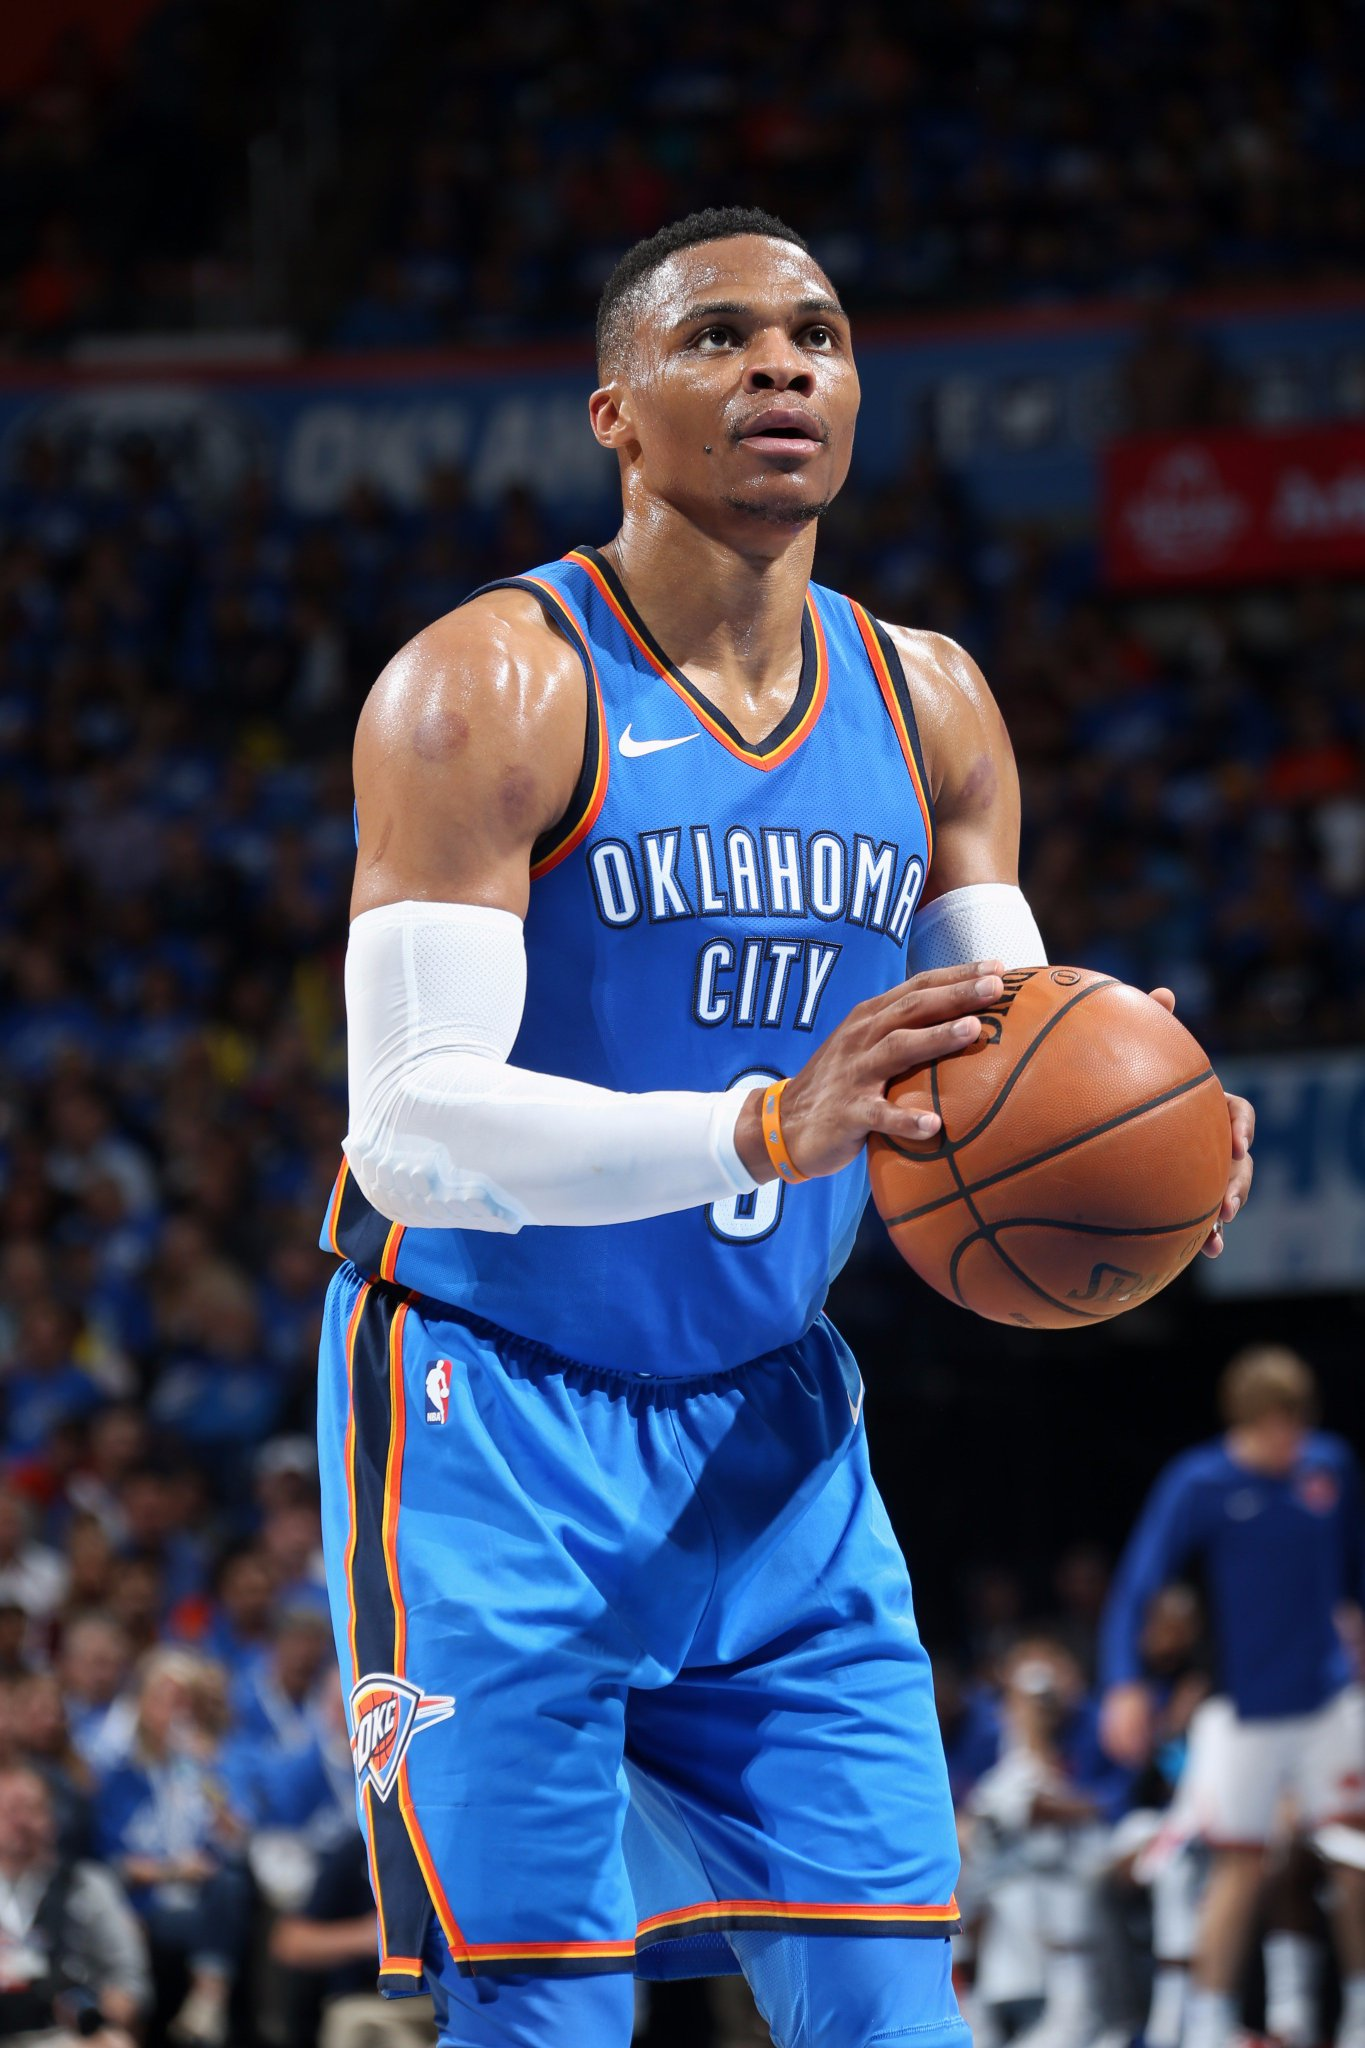 The first triple-double of the season goes to the reigning #KiaMVP, Russell Westbrook!  21 PTS - 16 ASTS - 10 REBS https://t.co/UcmsL8yFjI